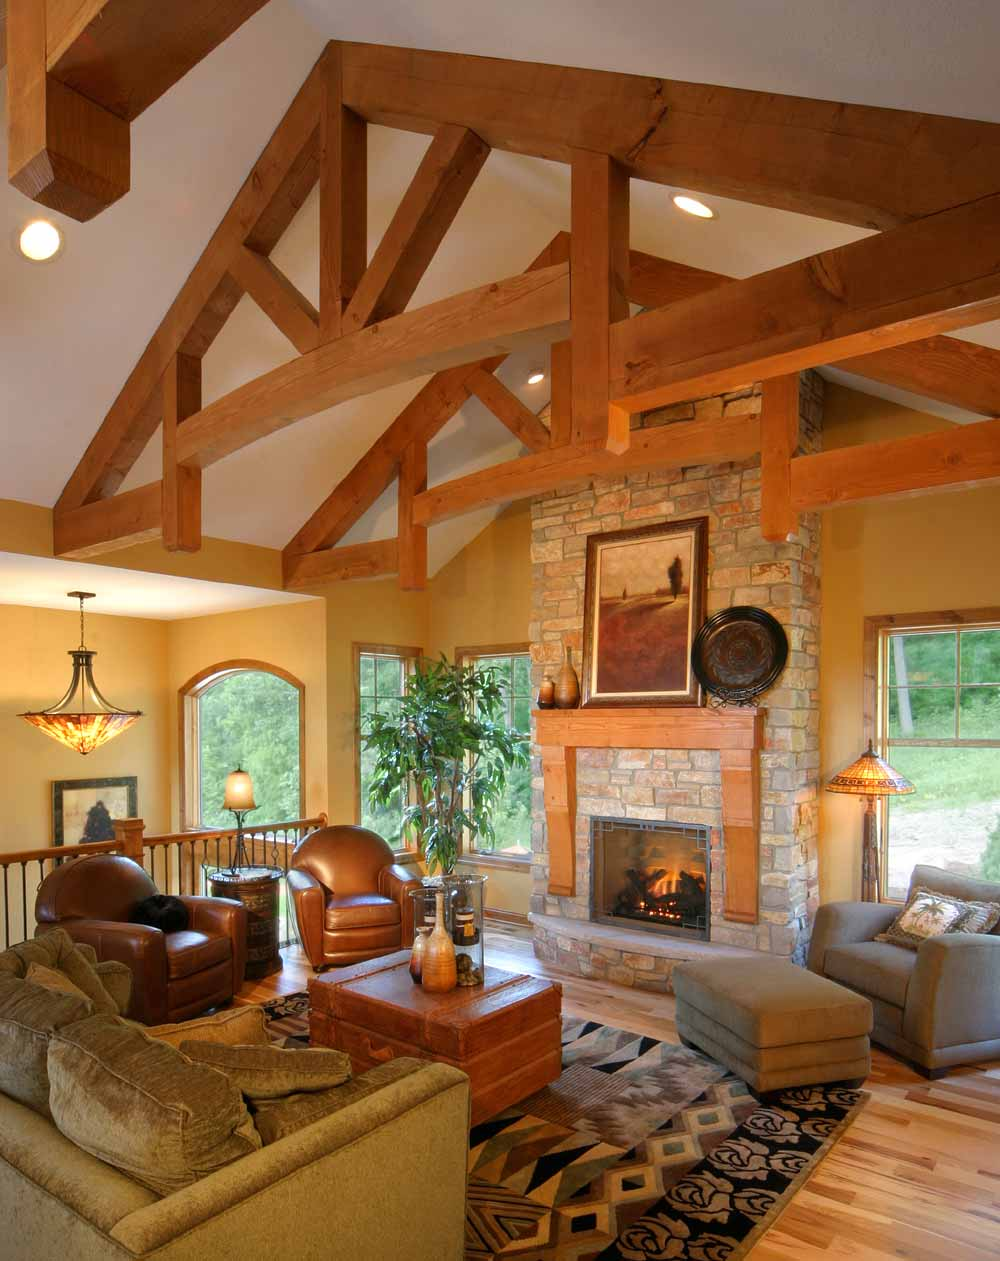 Living Room Structure Design Of Structural Wood Corporation Glulam Appearance Upgrades